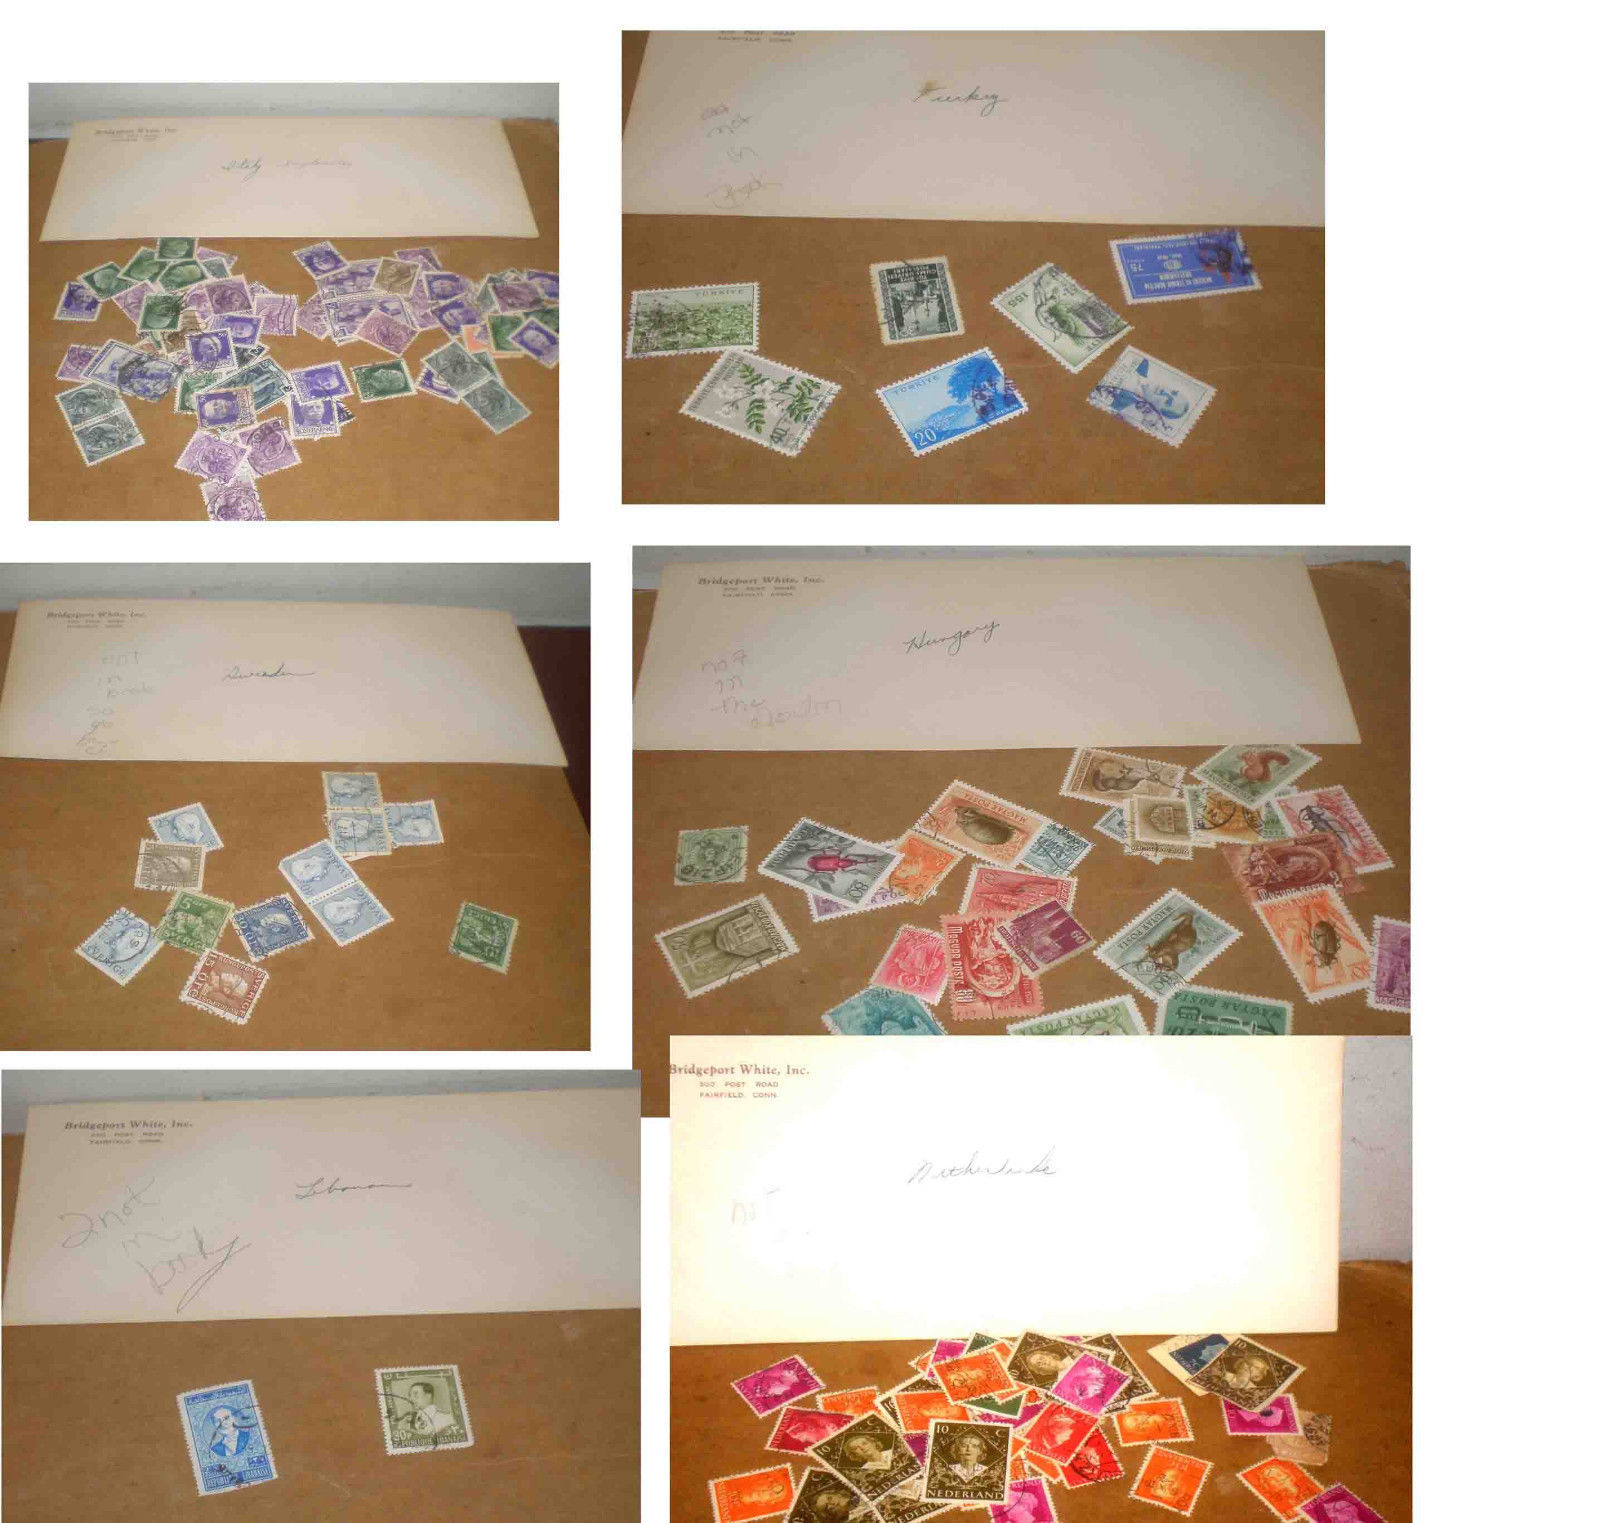 40 ENVELOPES OF COLLECTORS OLDER STAMPS FROM AROUND THE WORLD